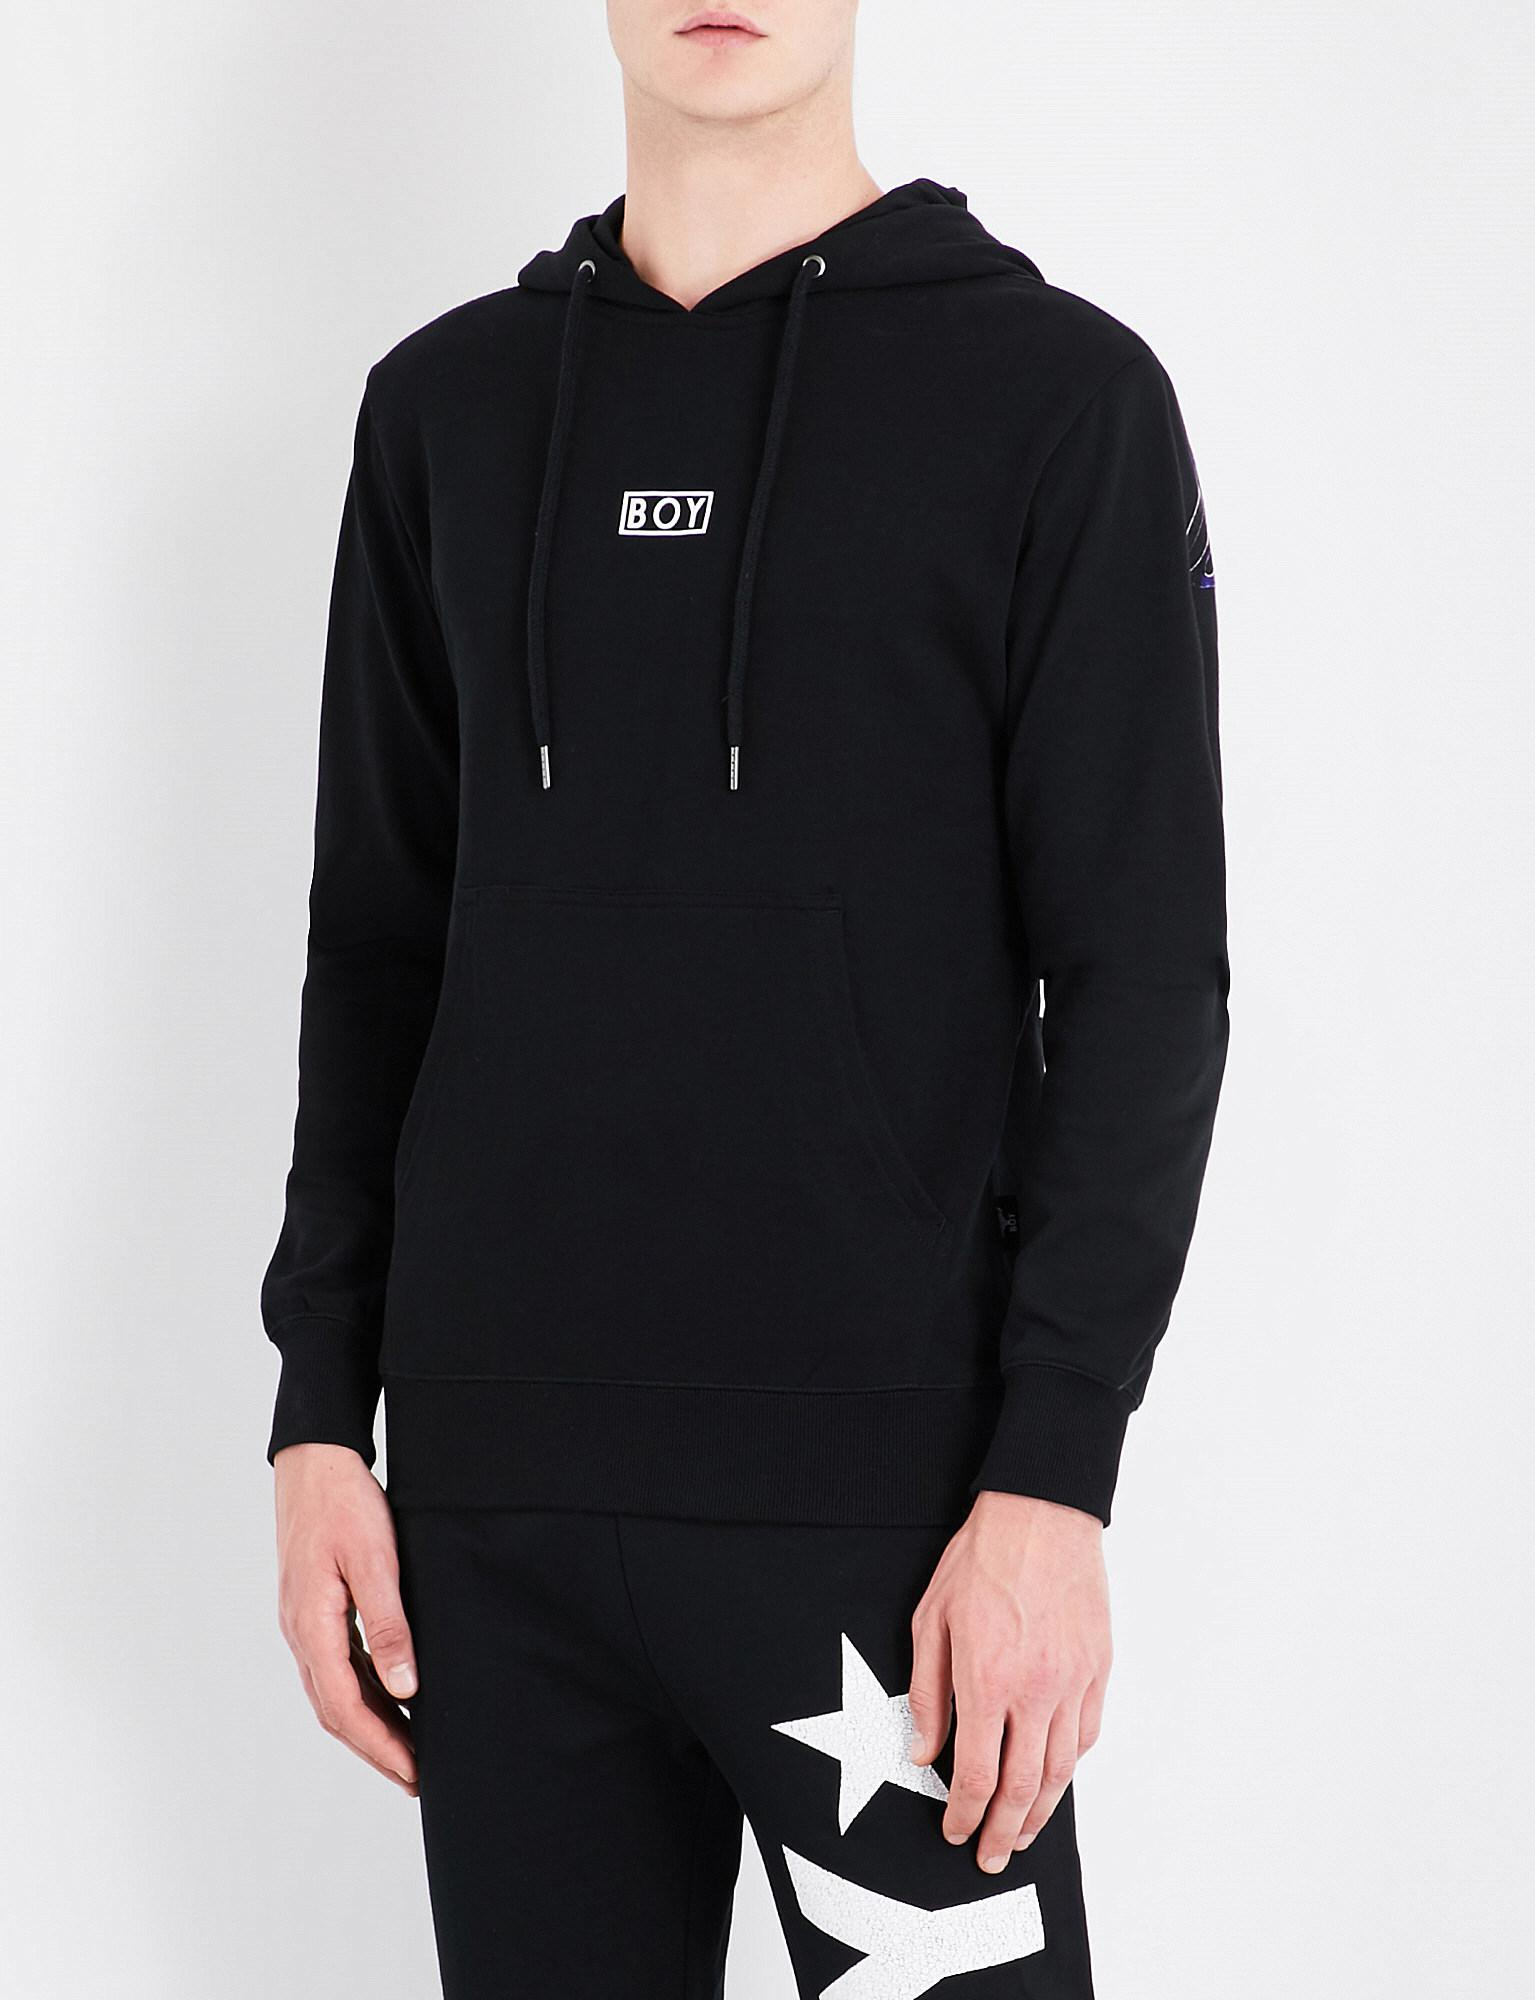 651187cd4c91 BOY London. Men s Black Eagle-print Cotton-jersey Hoody. £100 From  Selfridges